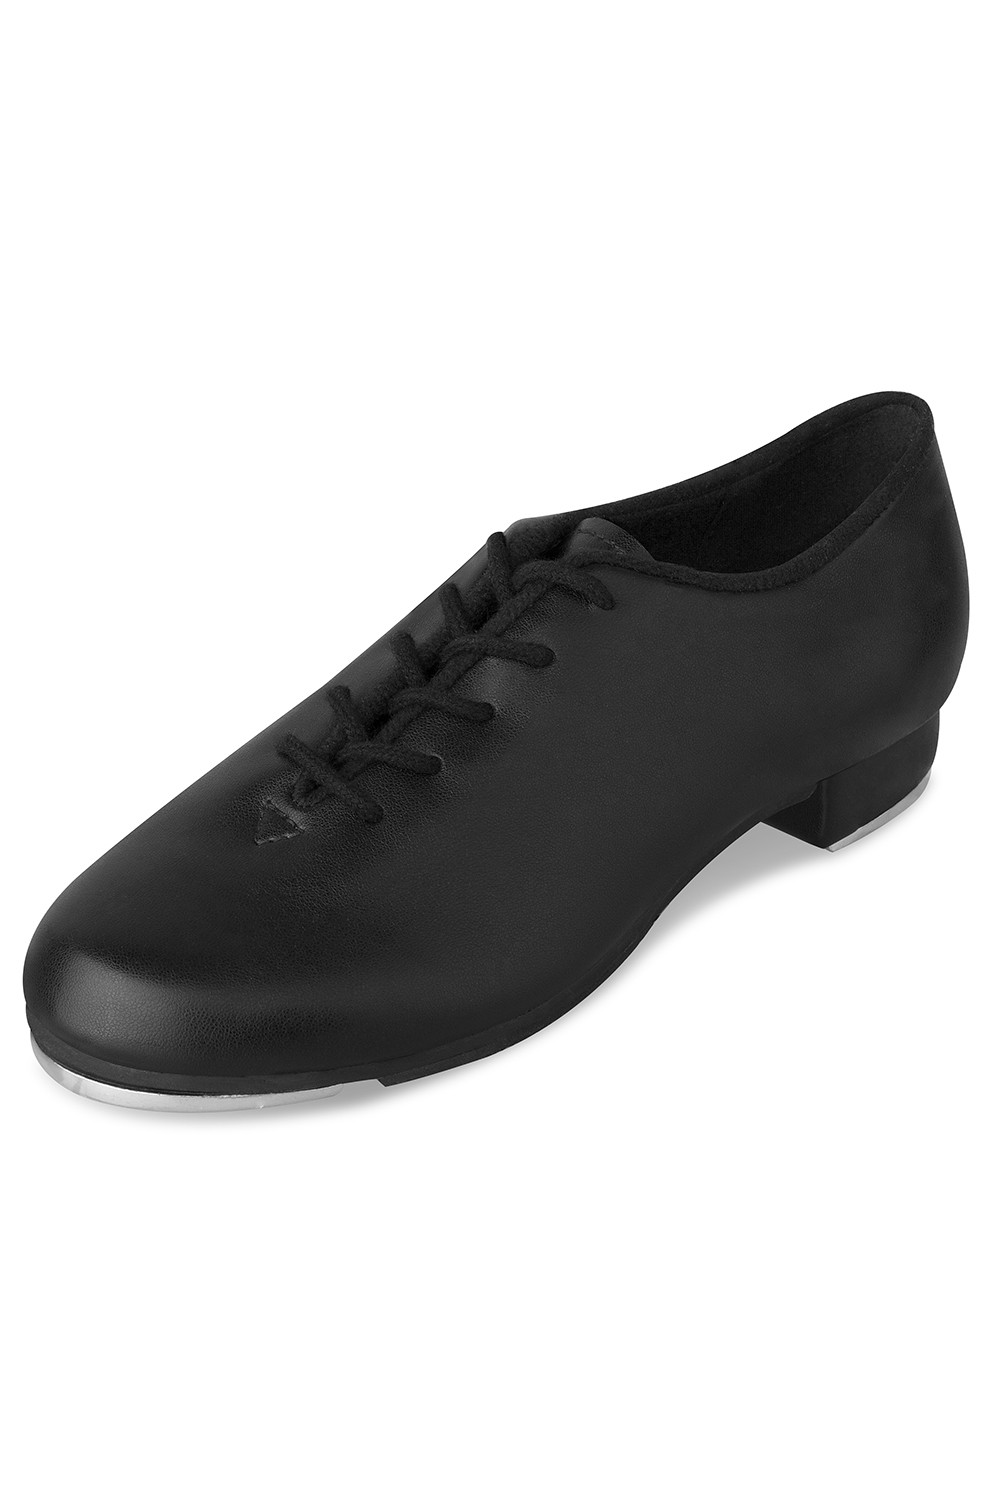 Jazz Tap - Girls Girl's Tap Shoes